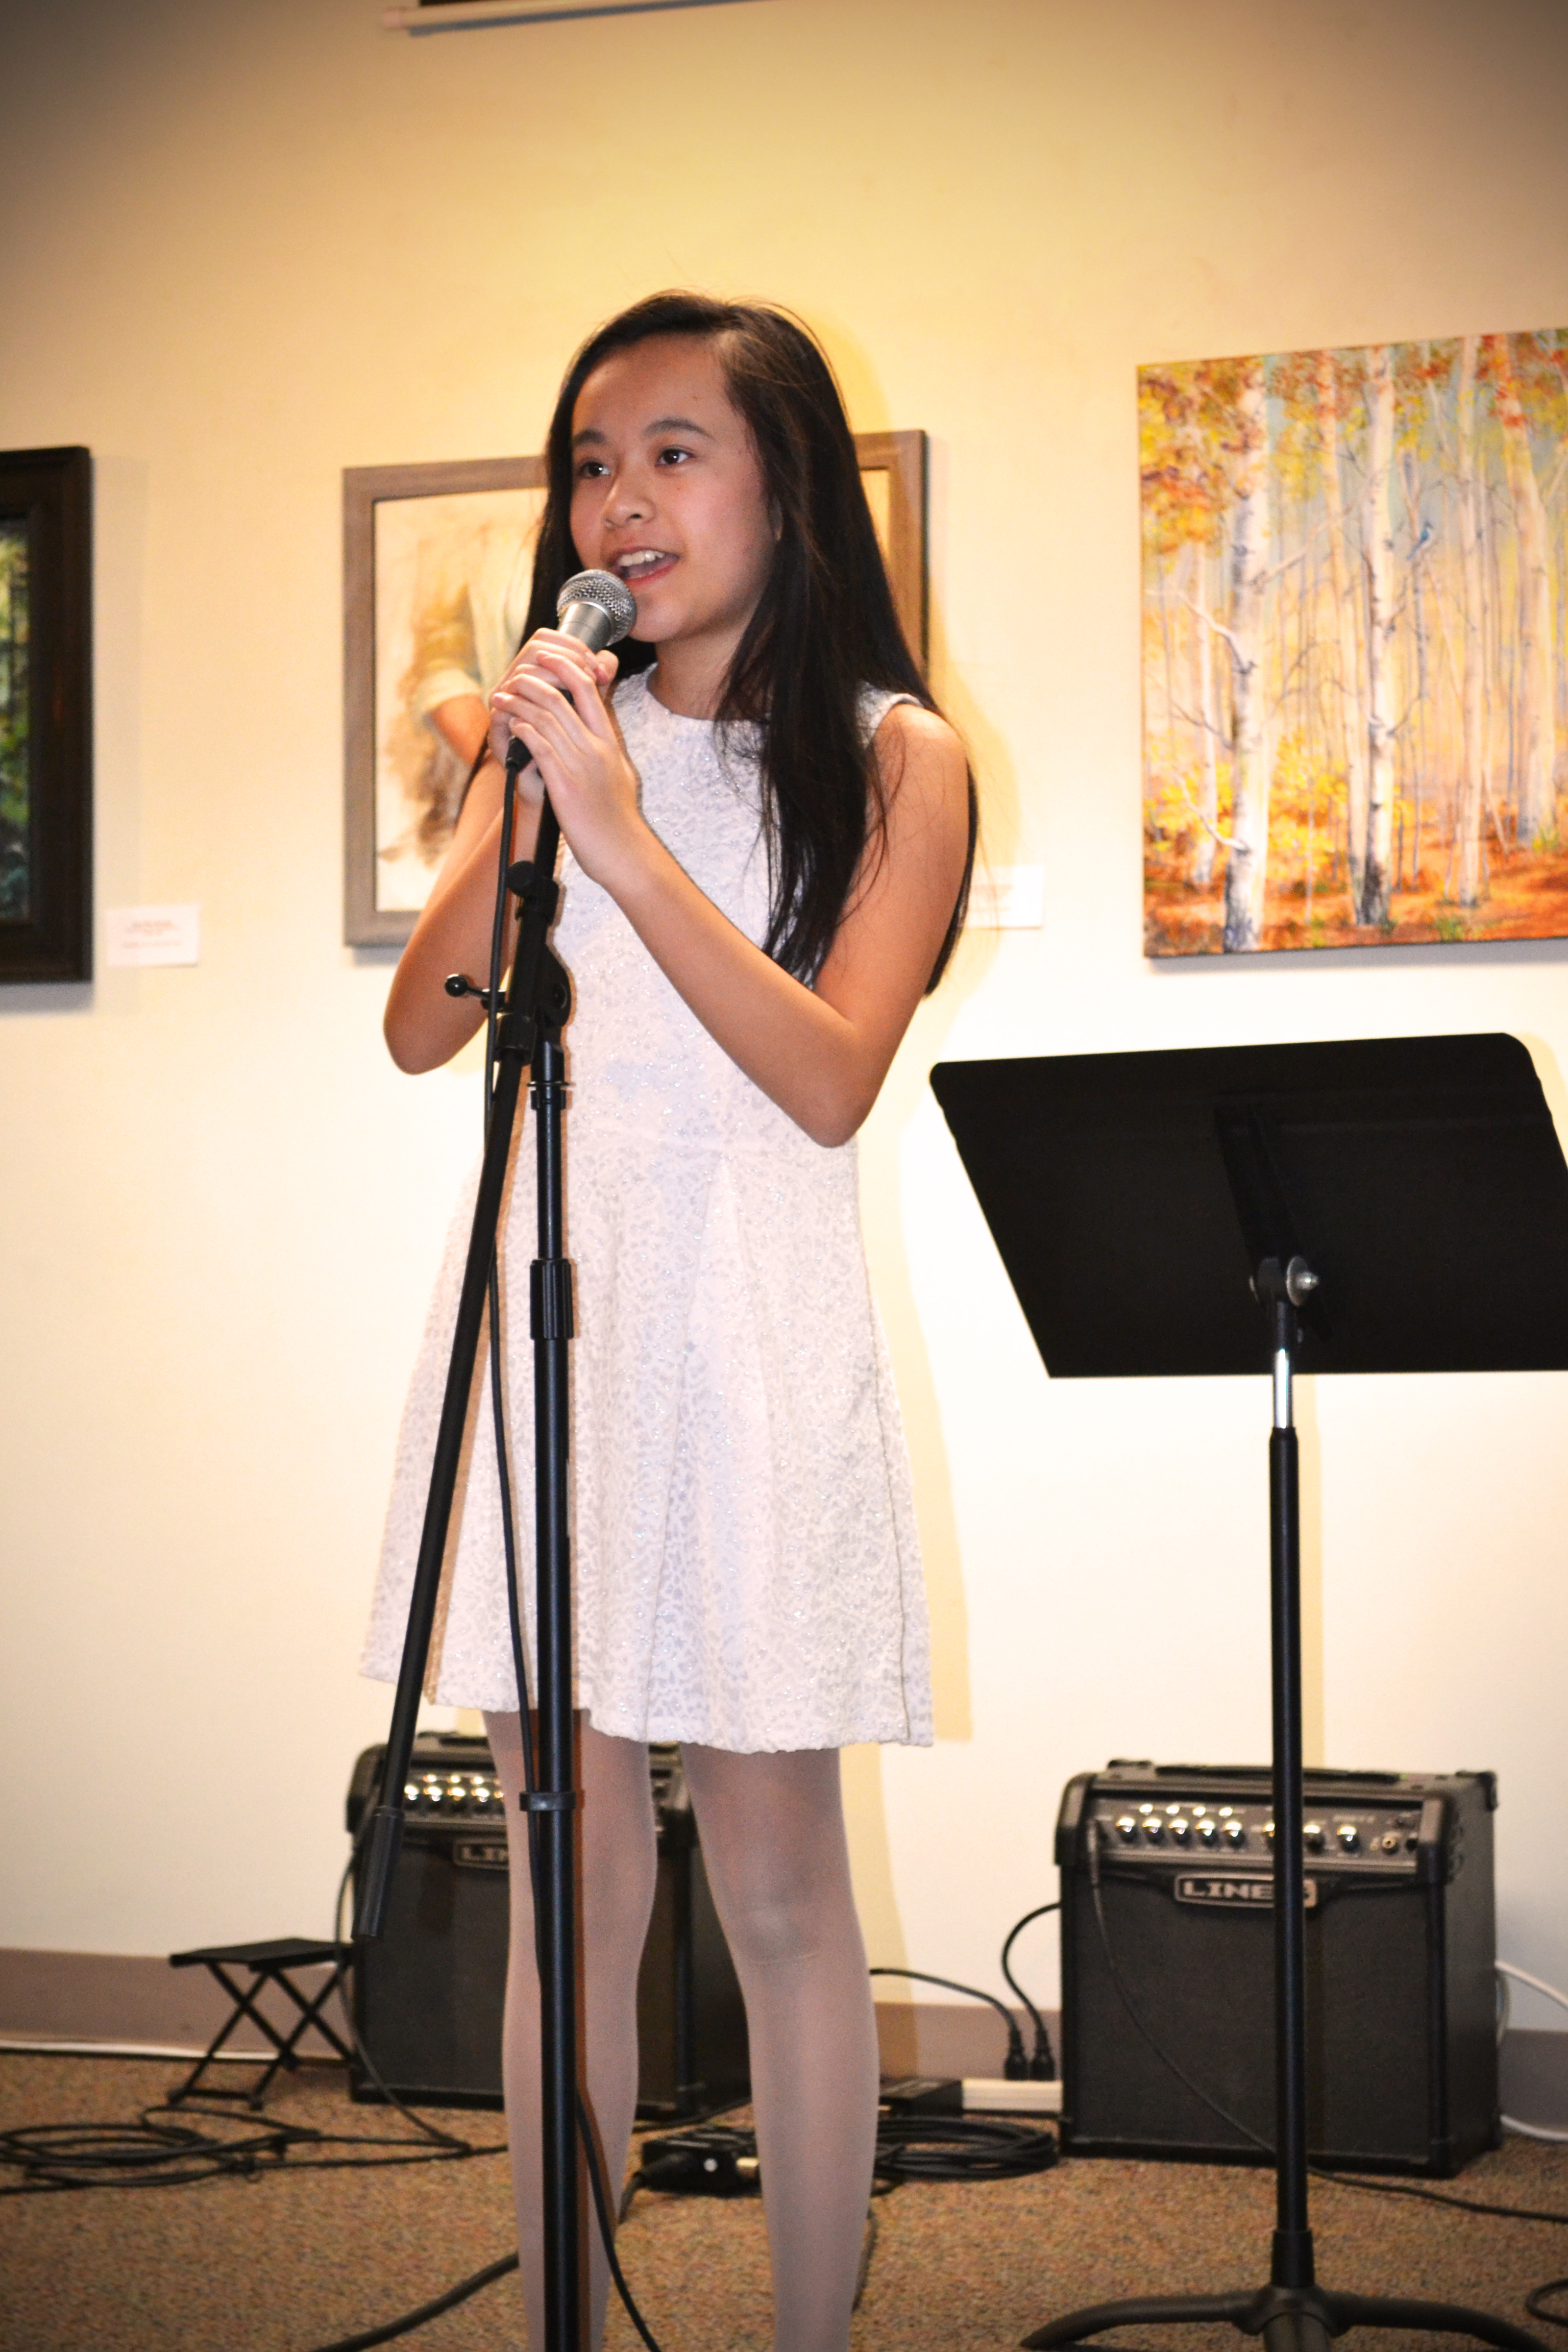 Solo Vocal Performance